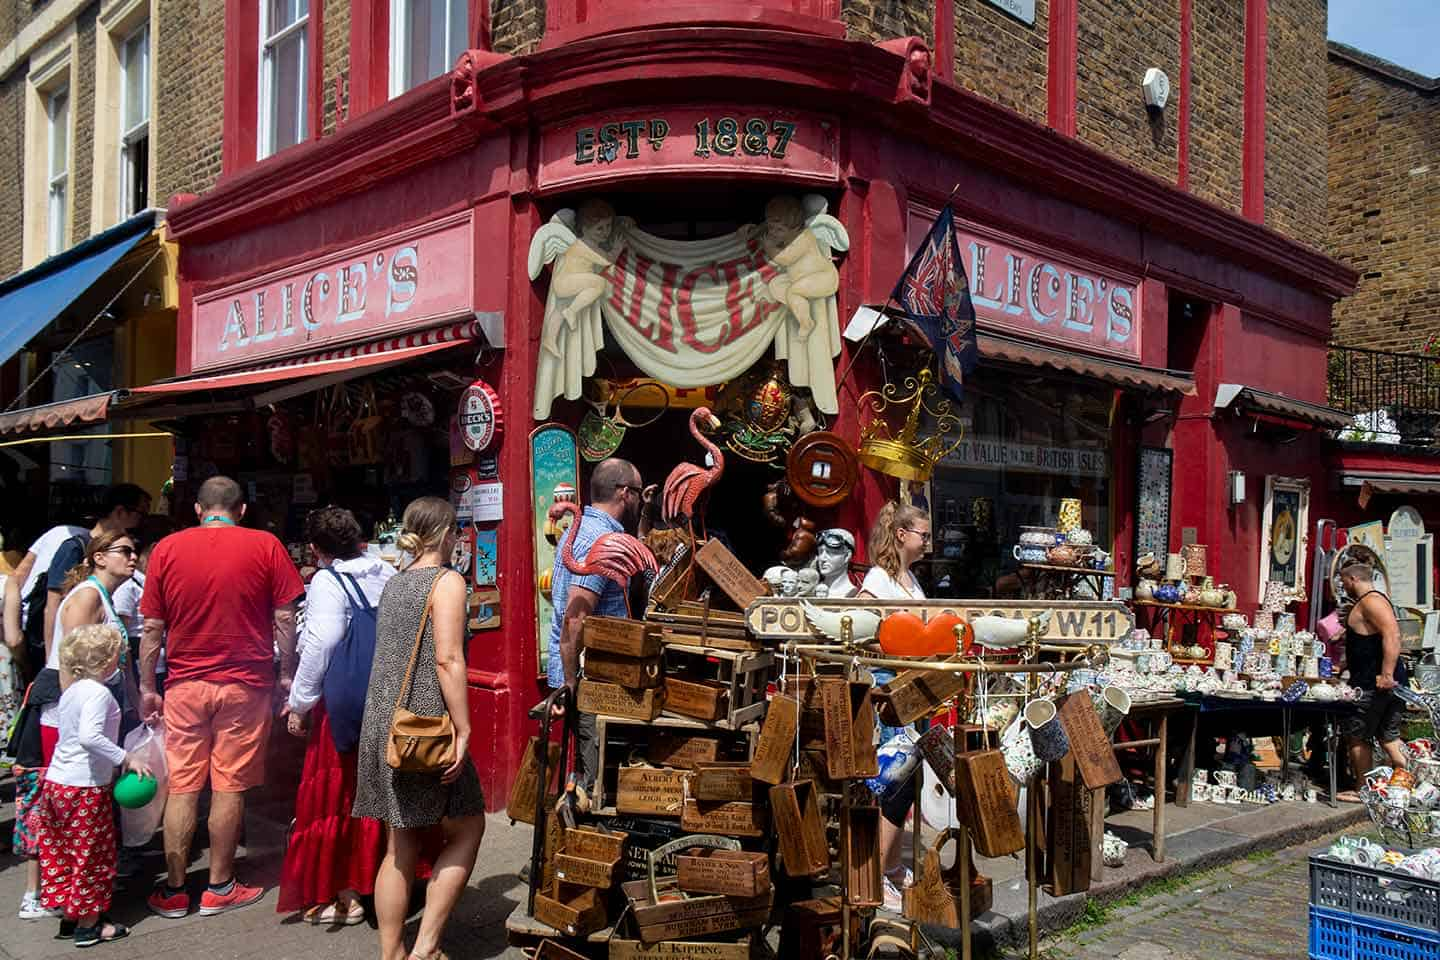 Image of Alice's Antique Shop on Portobello Road, London